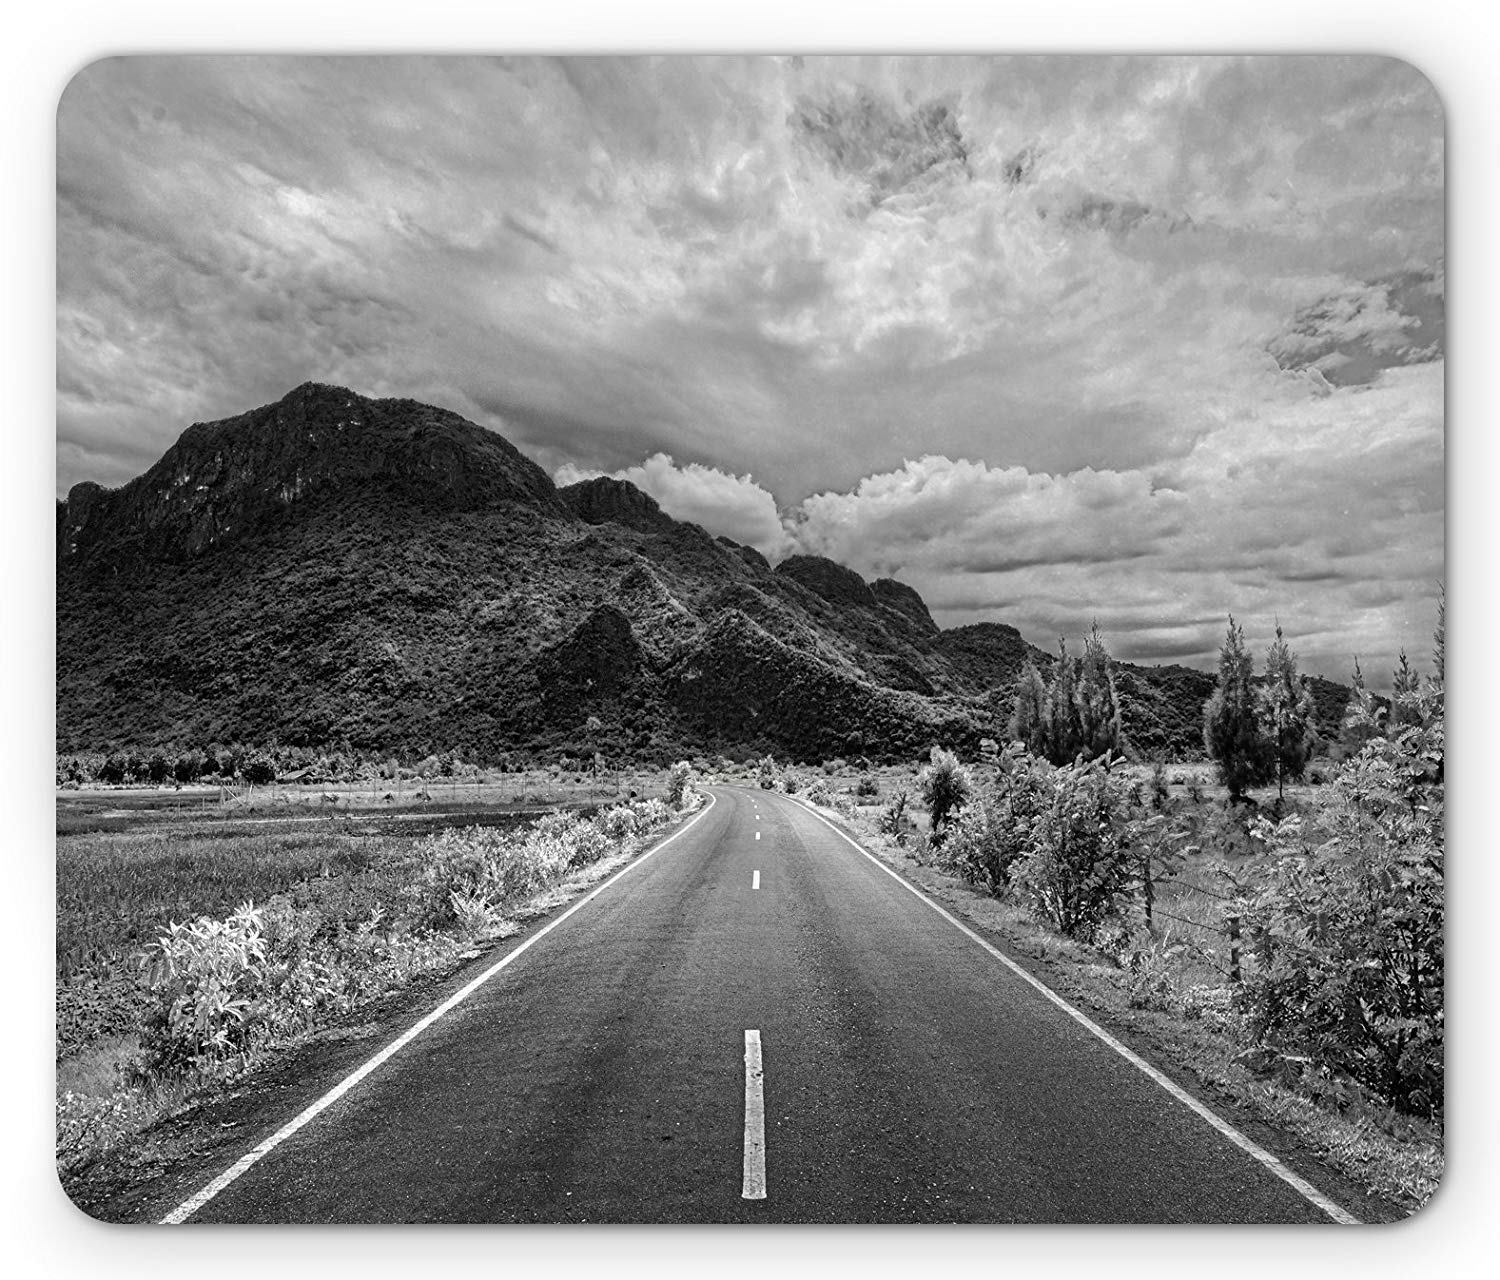 Landscape mouse pad black and white artsy photo of the road leading to a mountain artsy monochrome panorama standard size rectangle non slip rubber